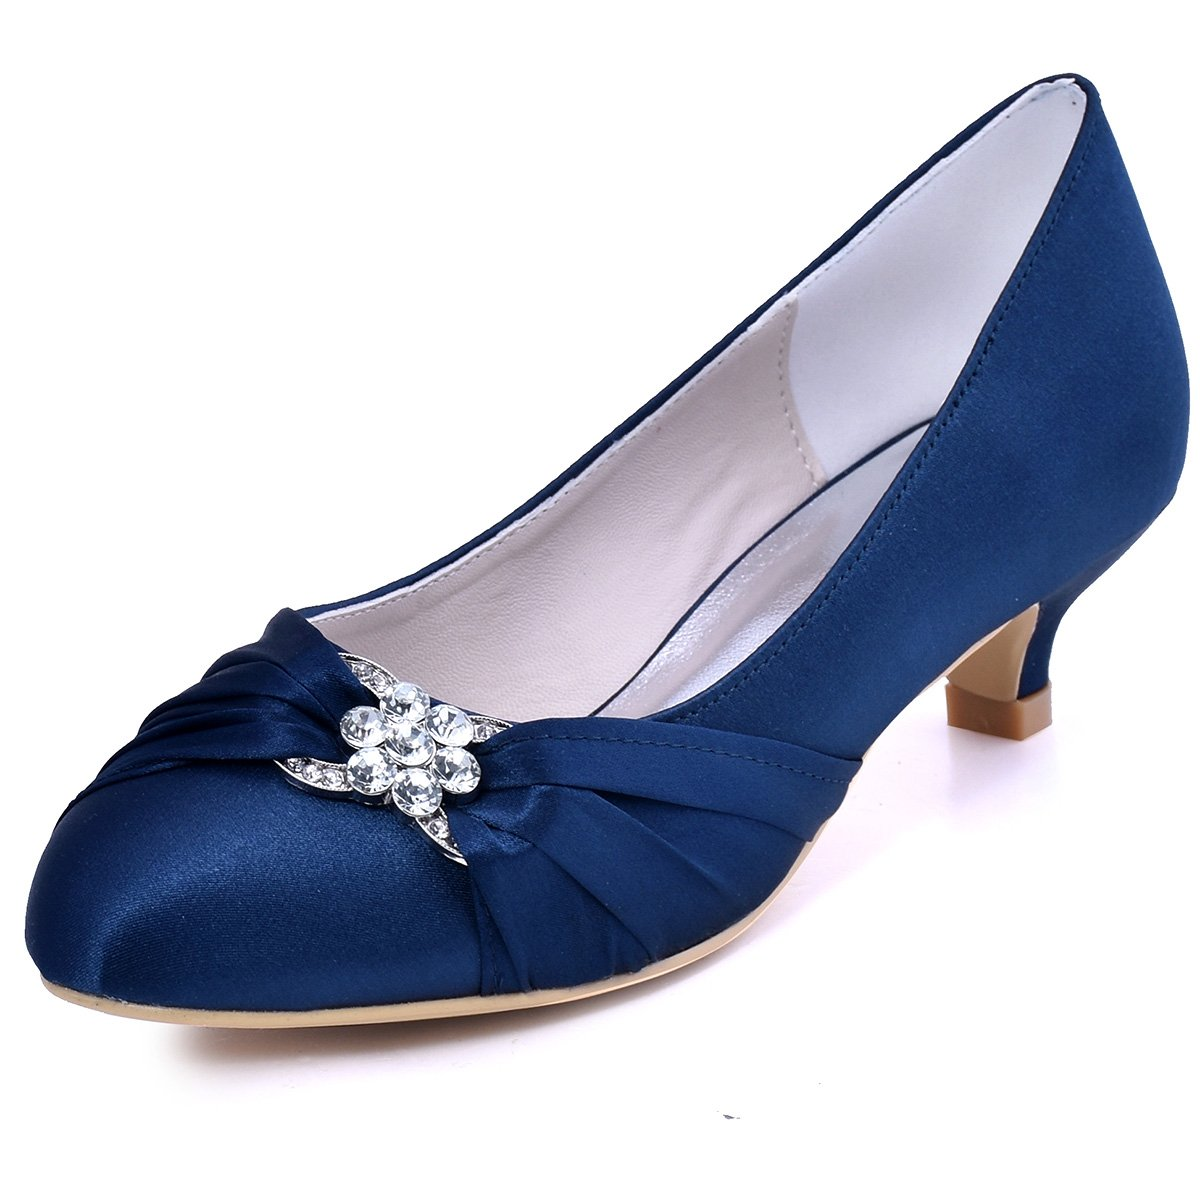 Navy blue wedding shoe amazon elegantpark ep2006l women low heels rhinestones round toe pumps satin wedding evening party shoes junglespirit Image collections